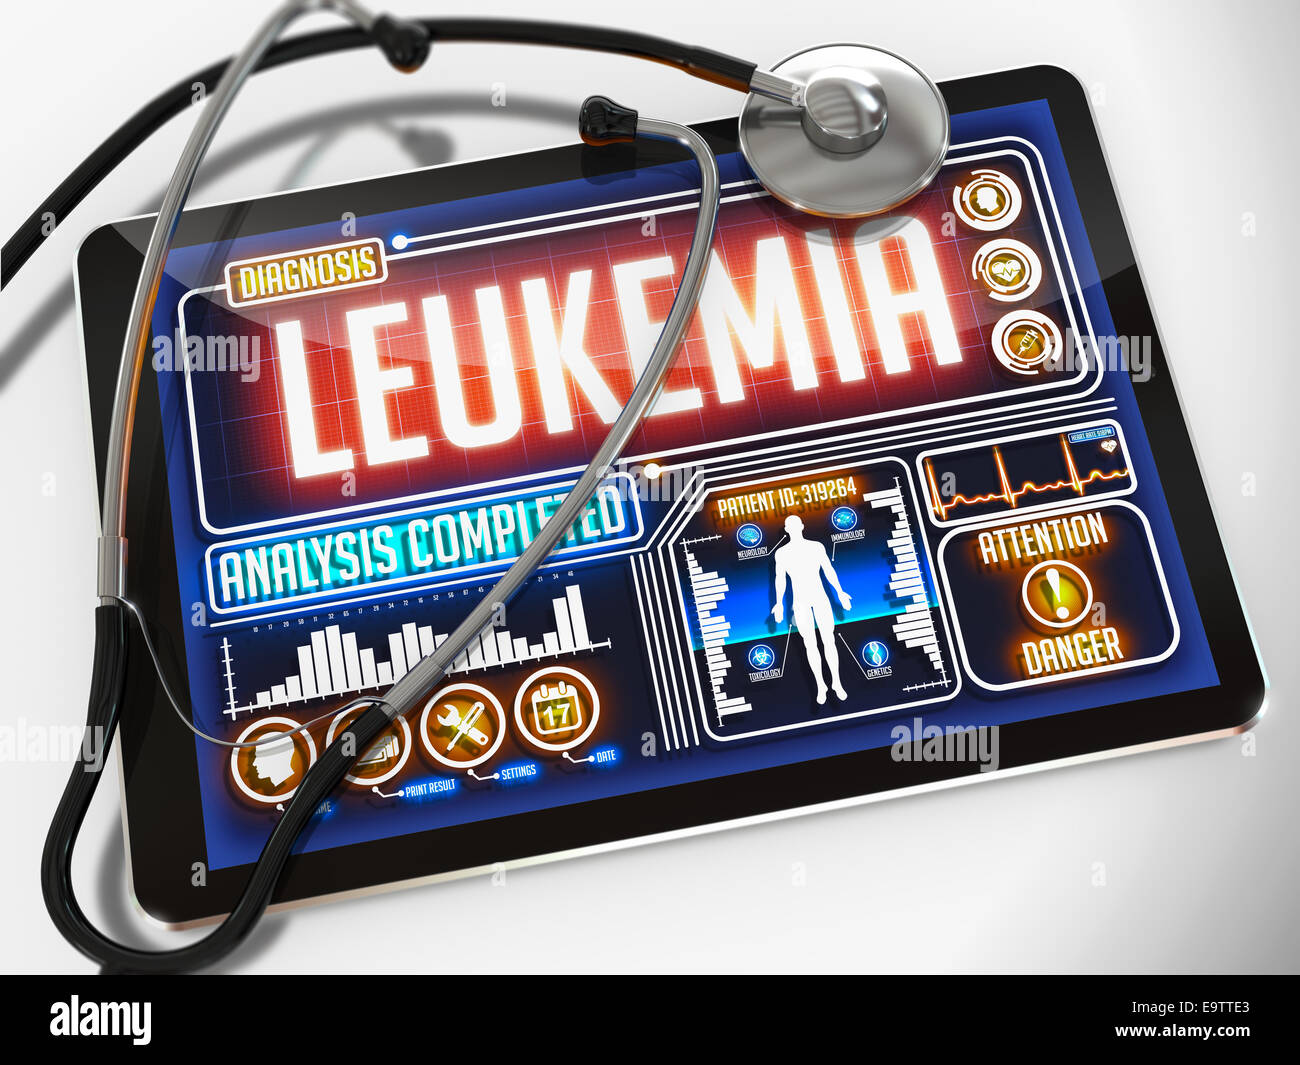 Medical Tablet with the Diagnosis of Leukemia on the Display and a Black Stethoscope on White Background. - Stock Image